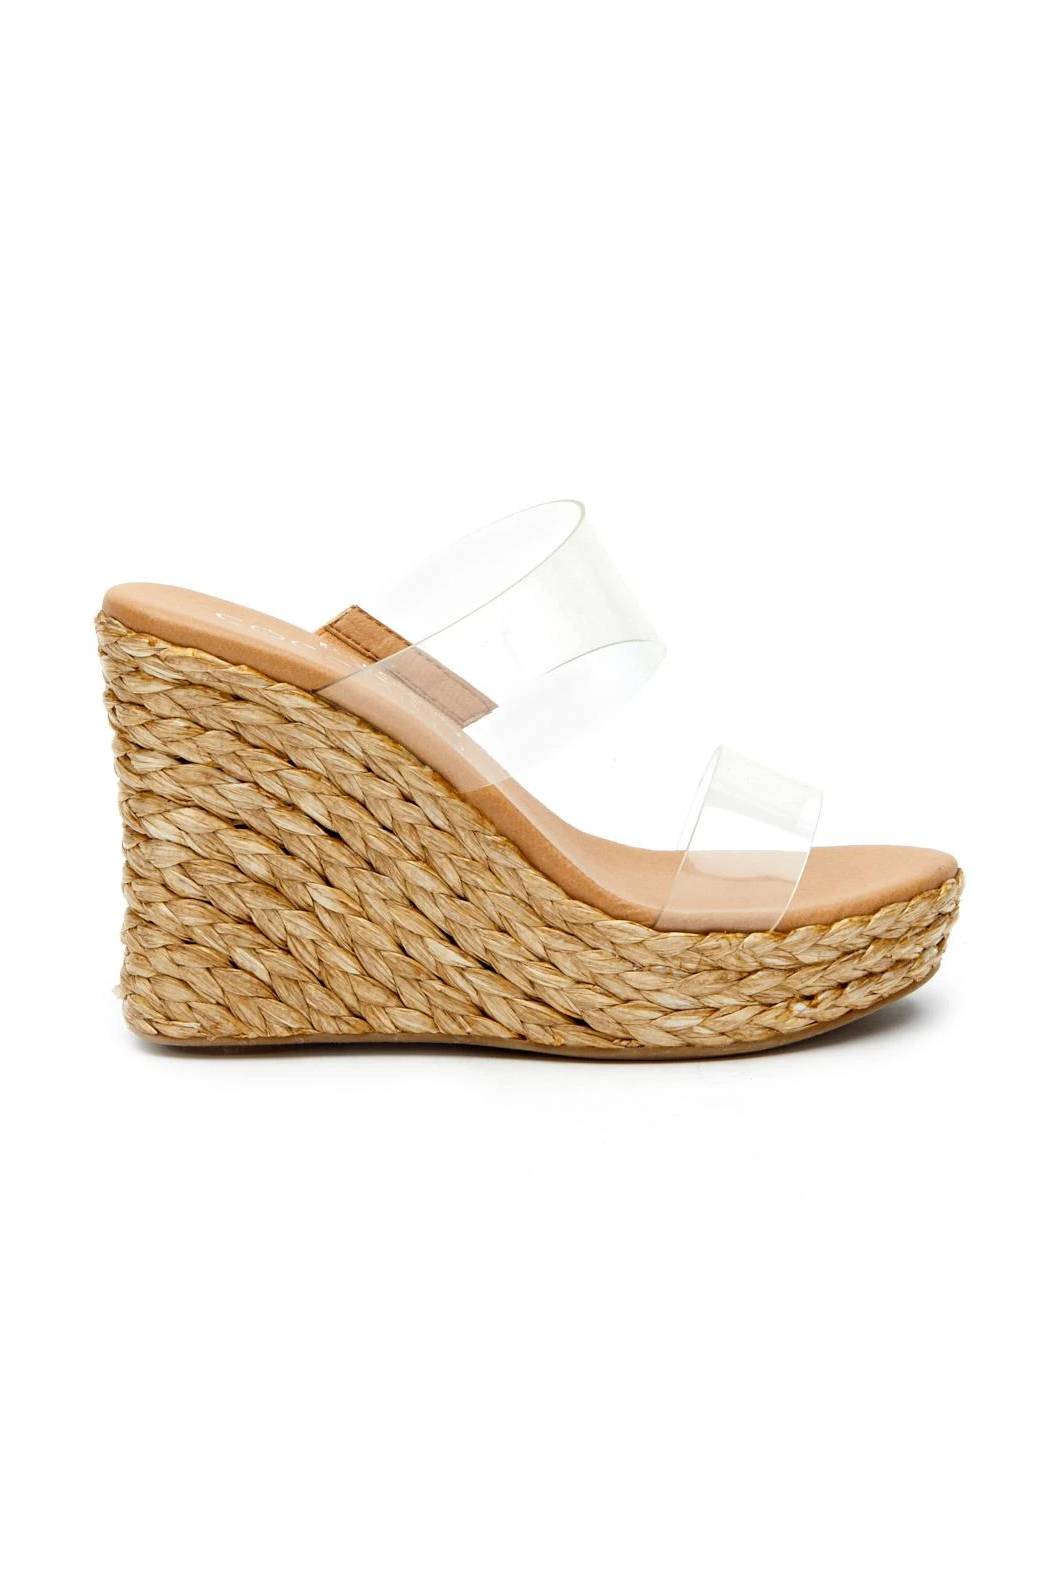 Coconuts by Matisse Bungalow Espadrille Wedge - Front Full Image